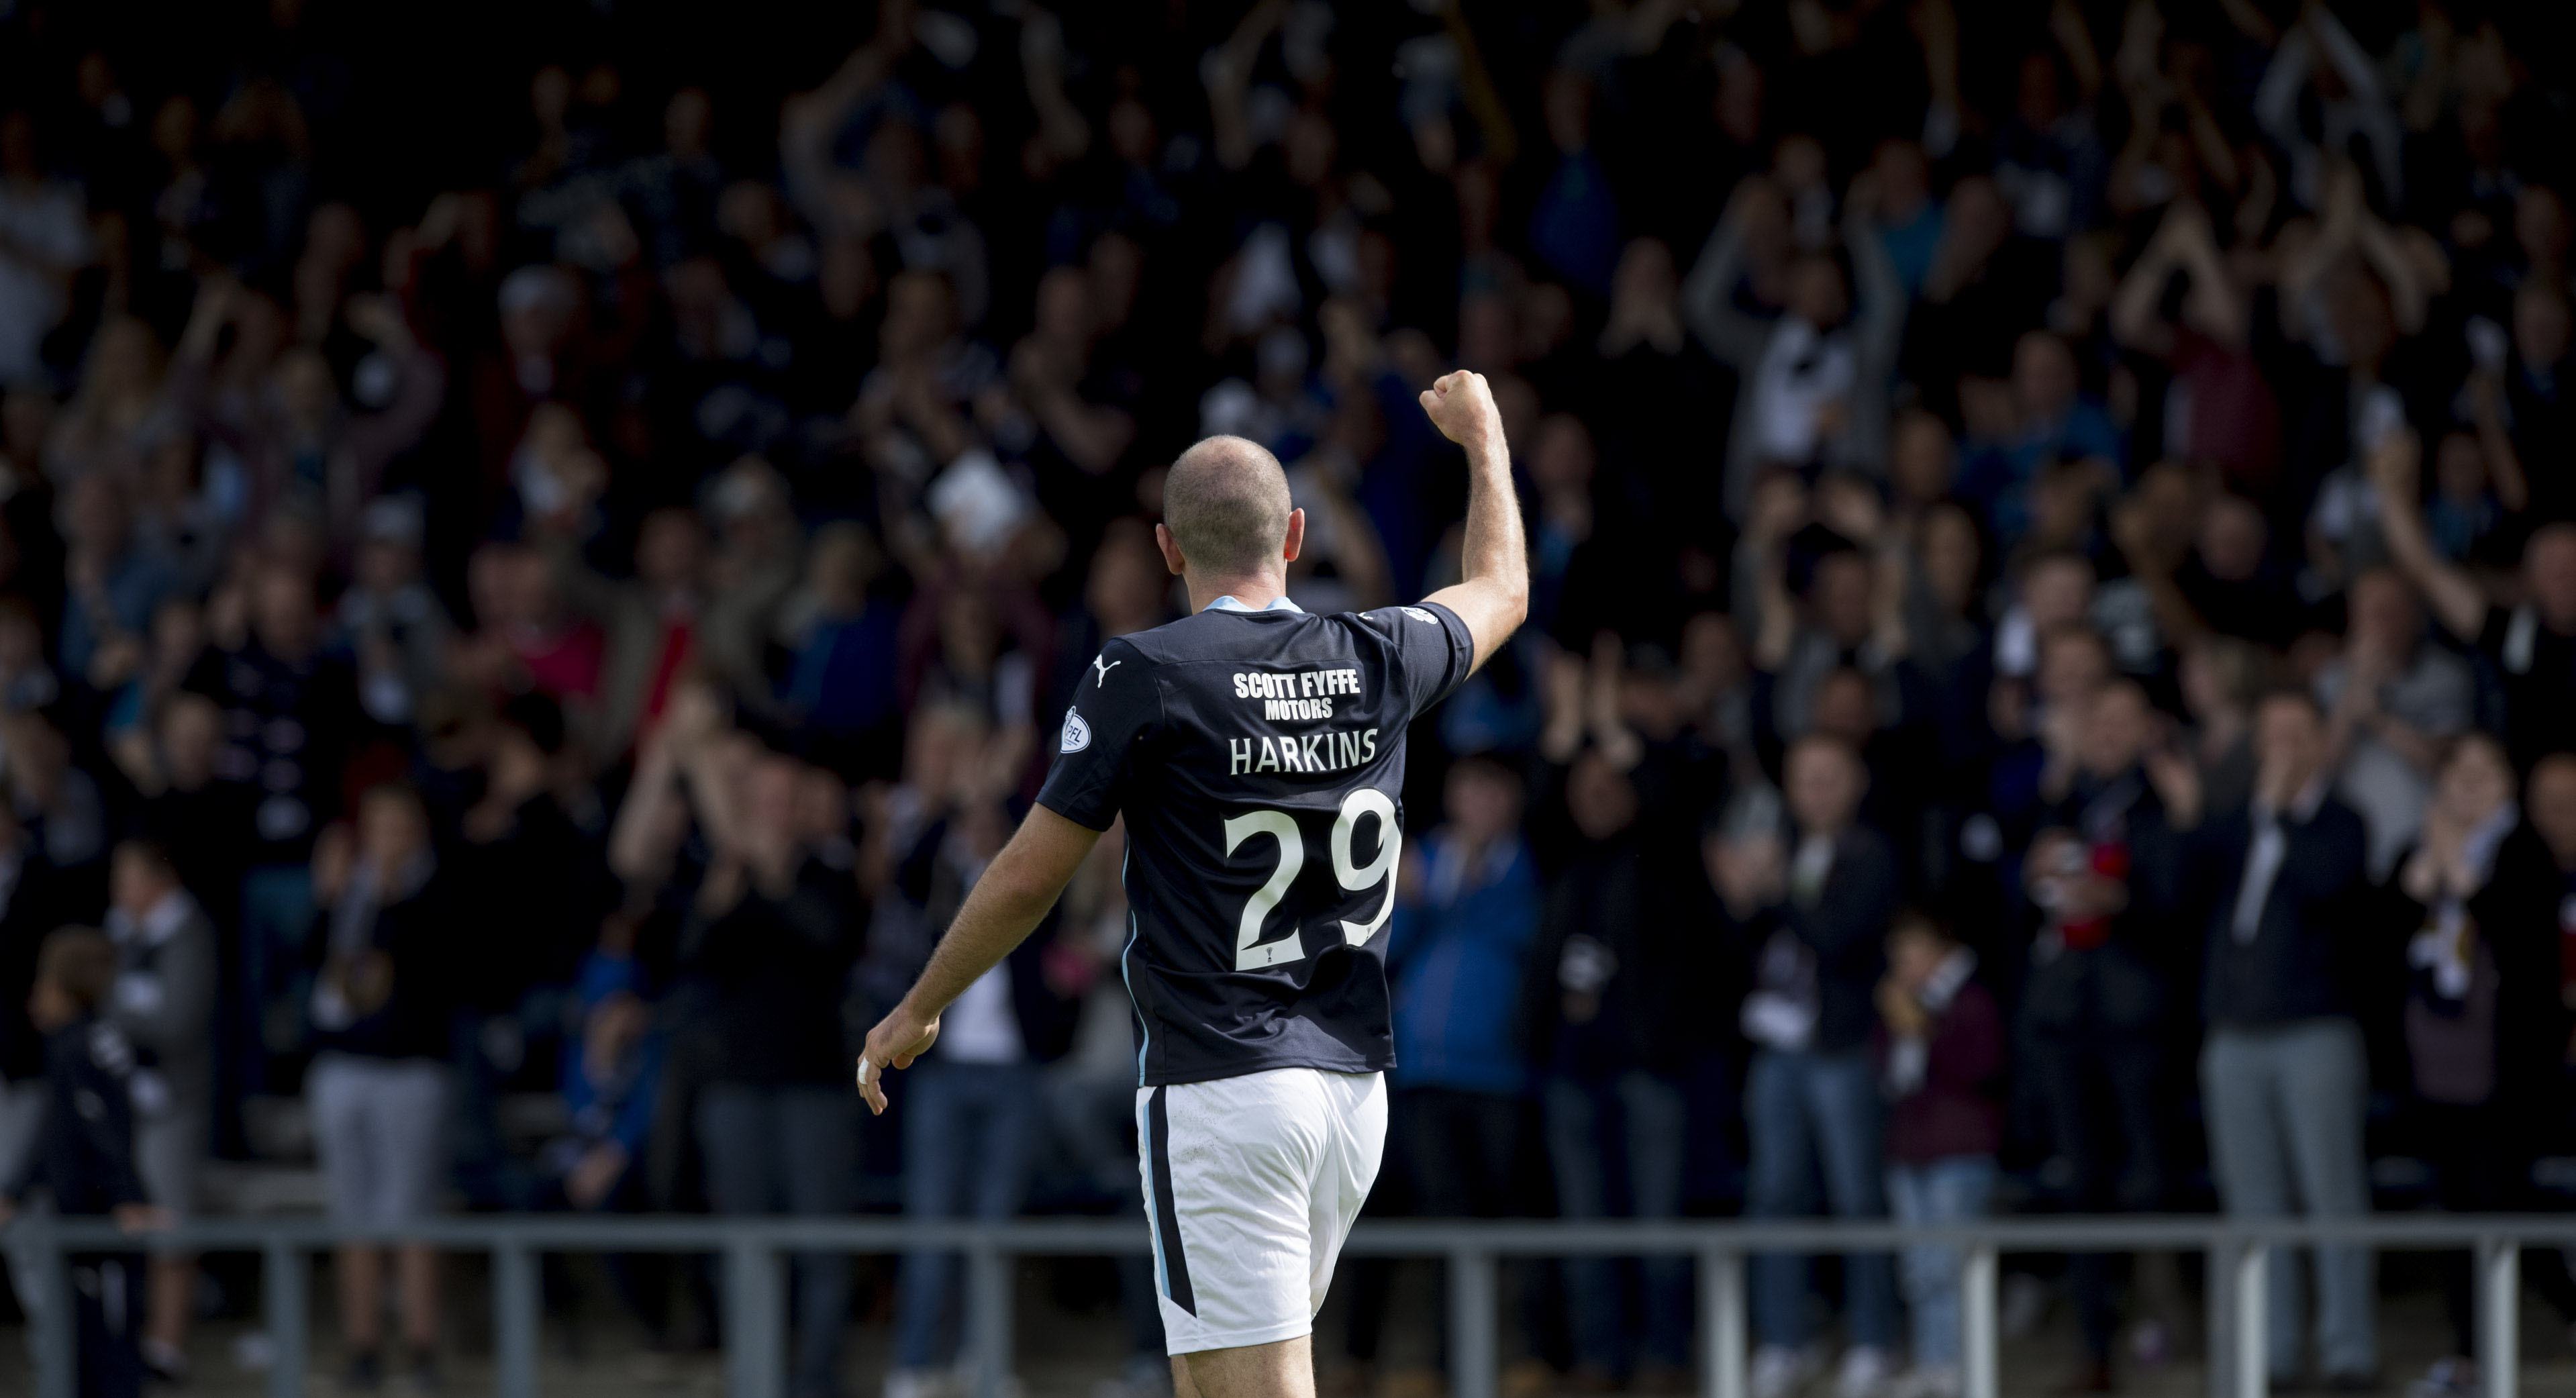 Gary Harkins struck up a great relationship with the Dundee fans.